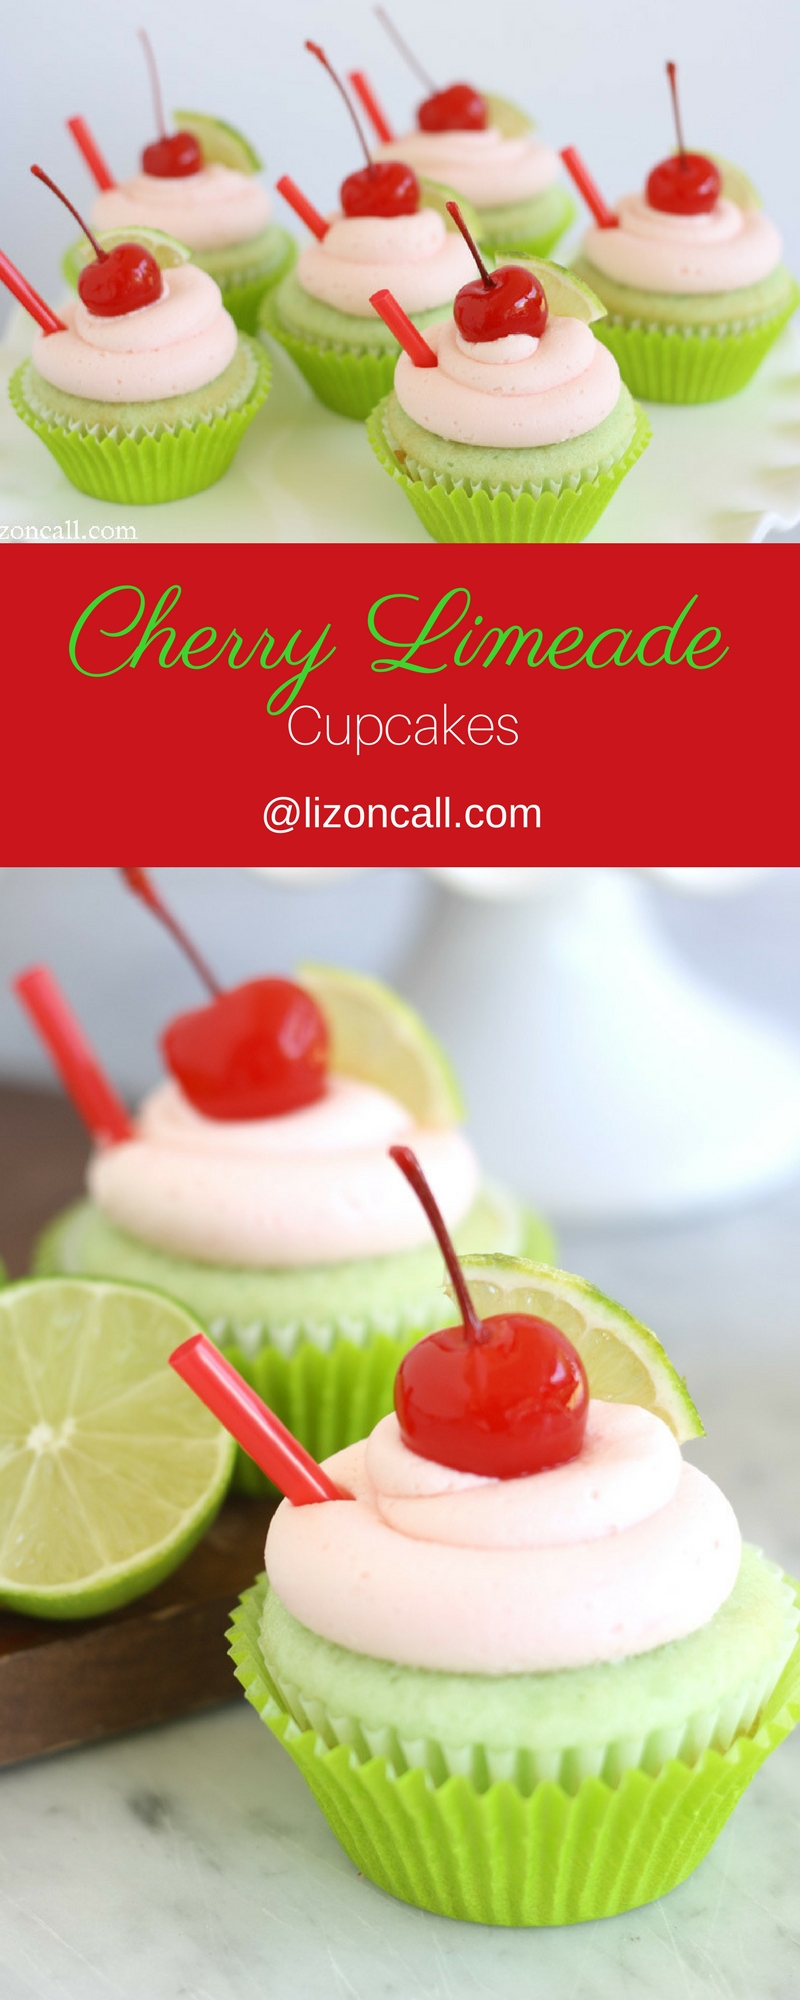 If you love cherry limeades, you'll love these cherry limeade cupcakes. Your favorite drink in cupcake form!